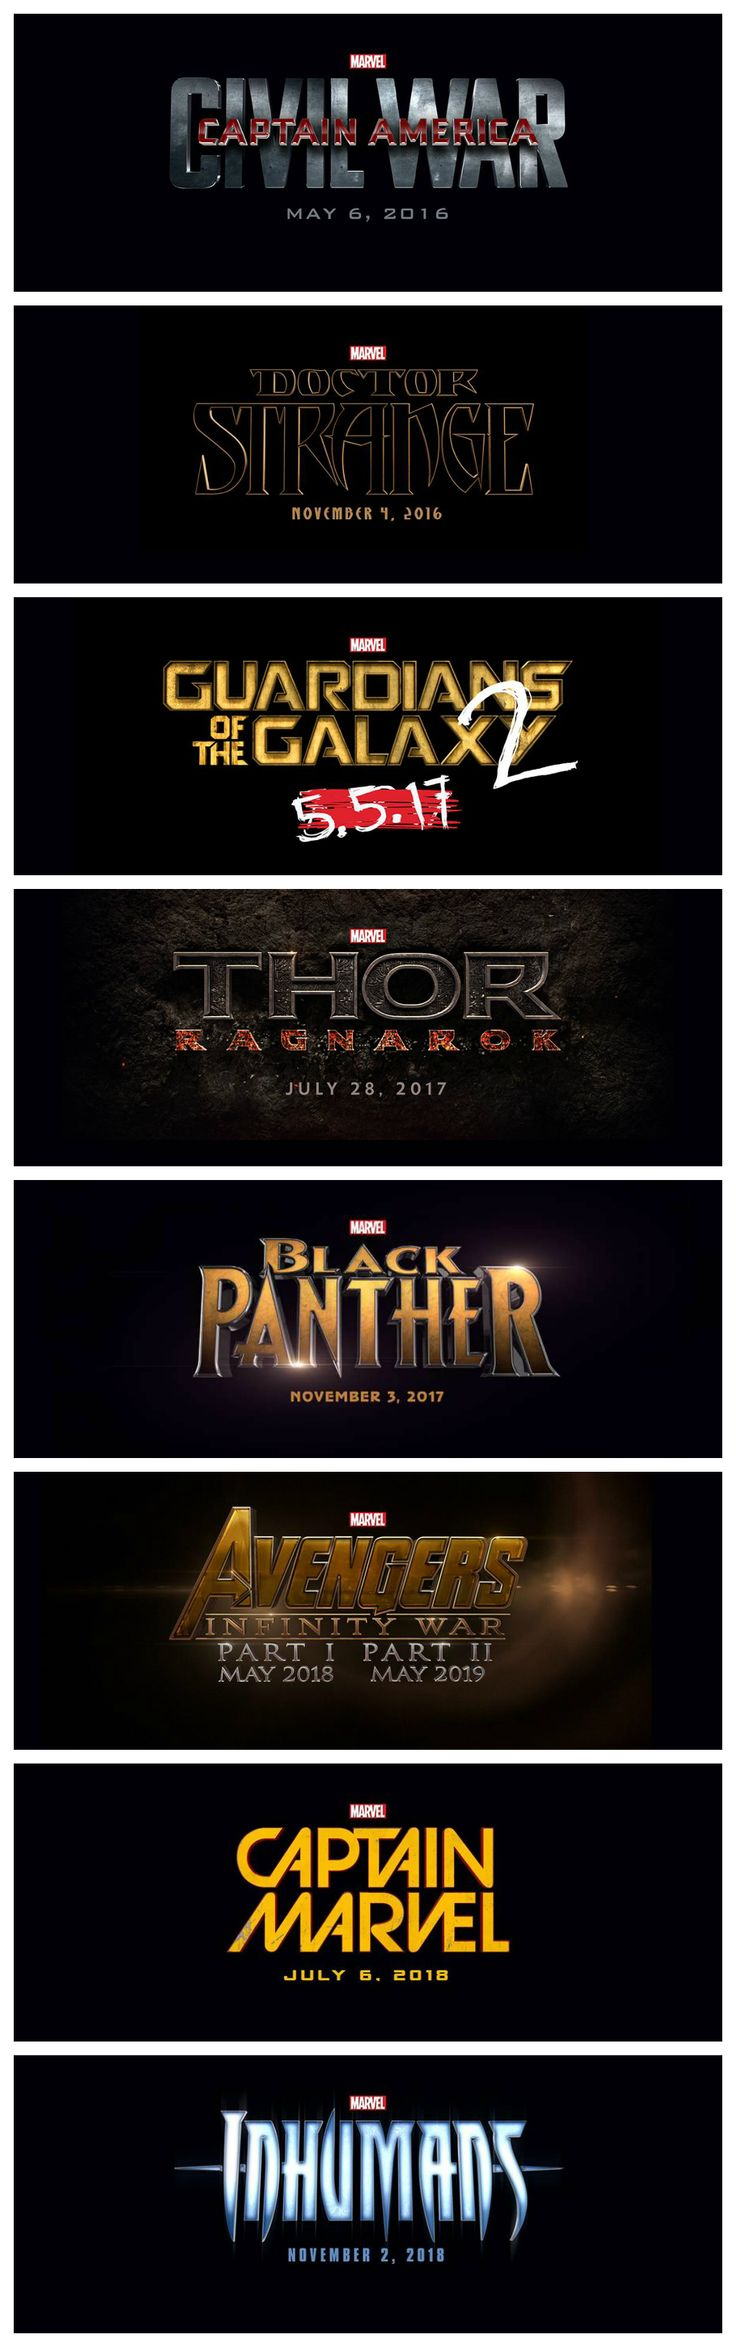 MARVEL JUST ANNOUNCED ALL THEIR MOVIES UP UNTIL 2018 AND IT'S 100% OFFICIAL AND there is just no way to process all this.